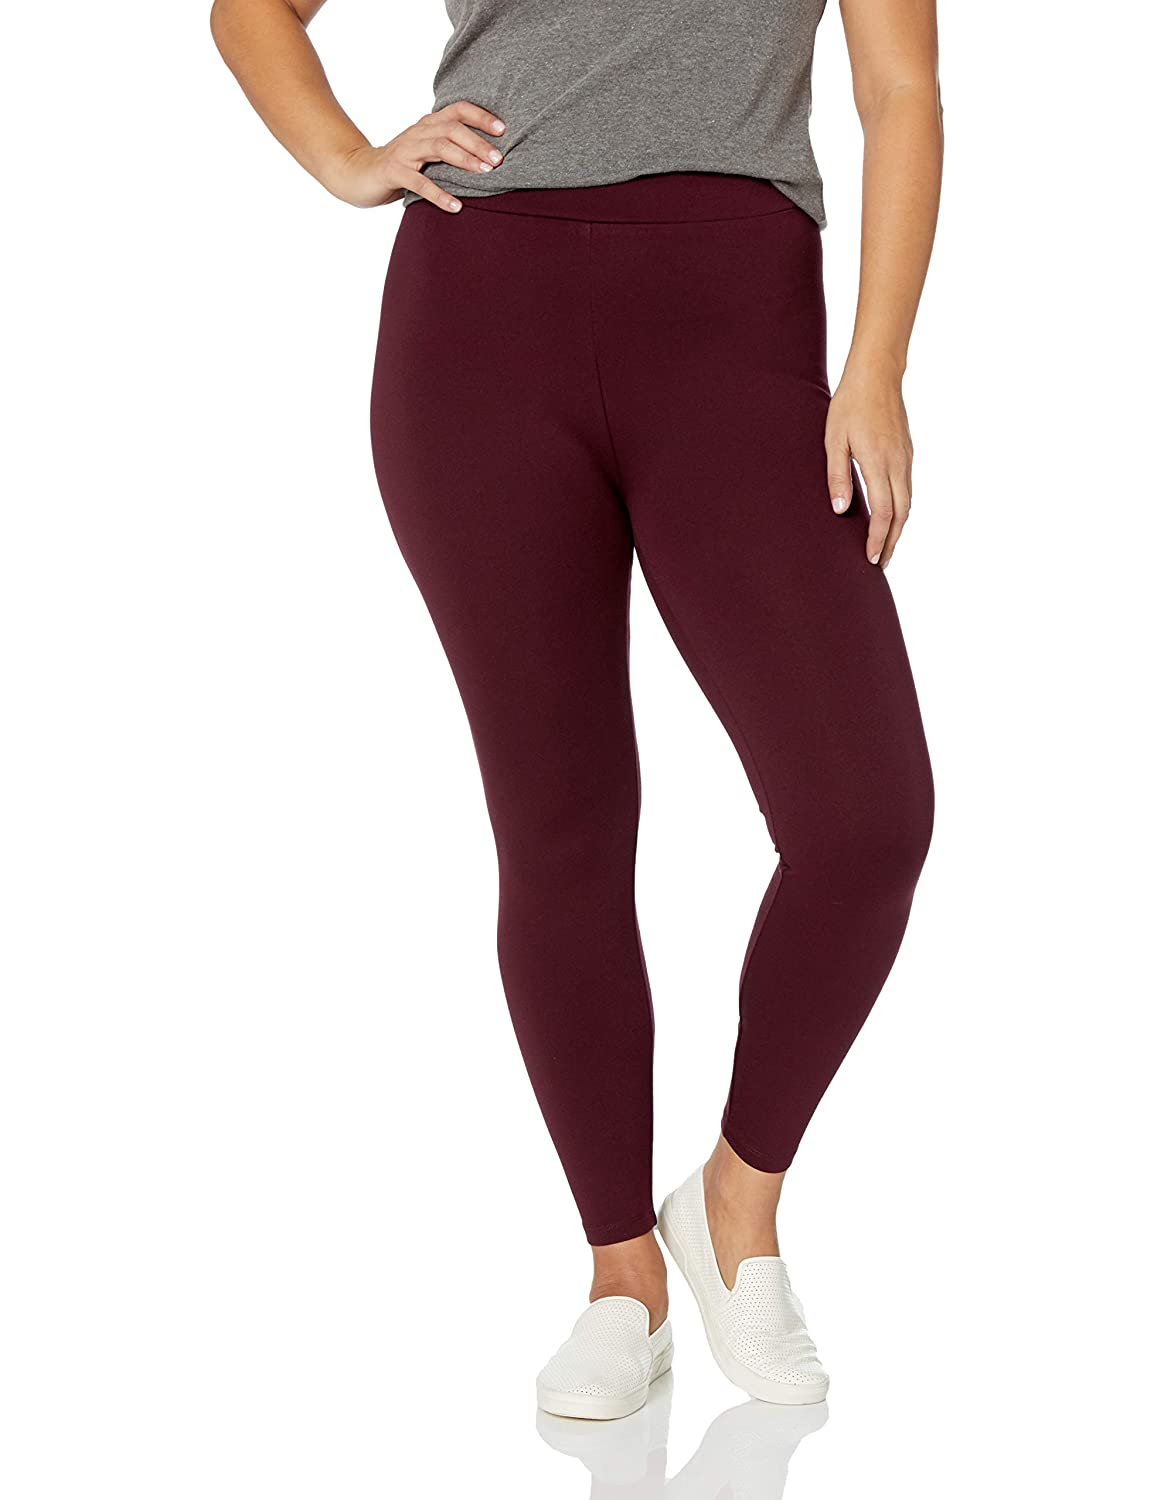 Daily Ritual Women's Ponte Knit Legging SP18(L)MP-103